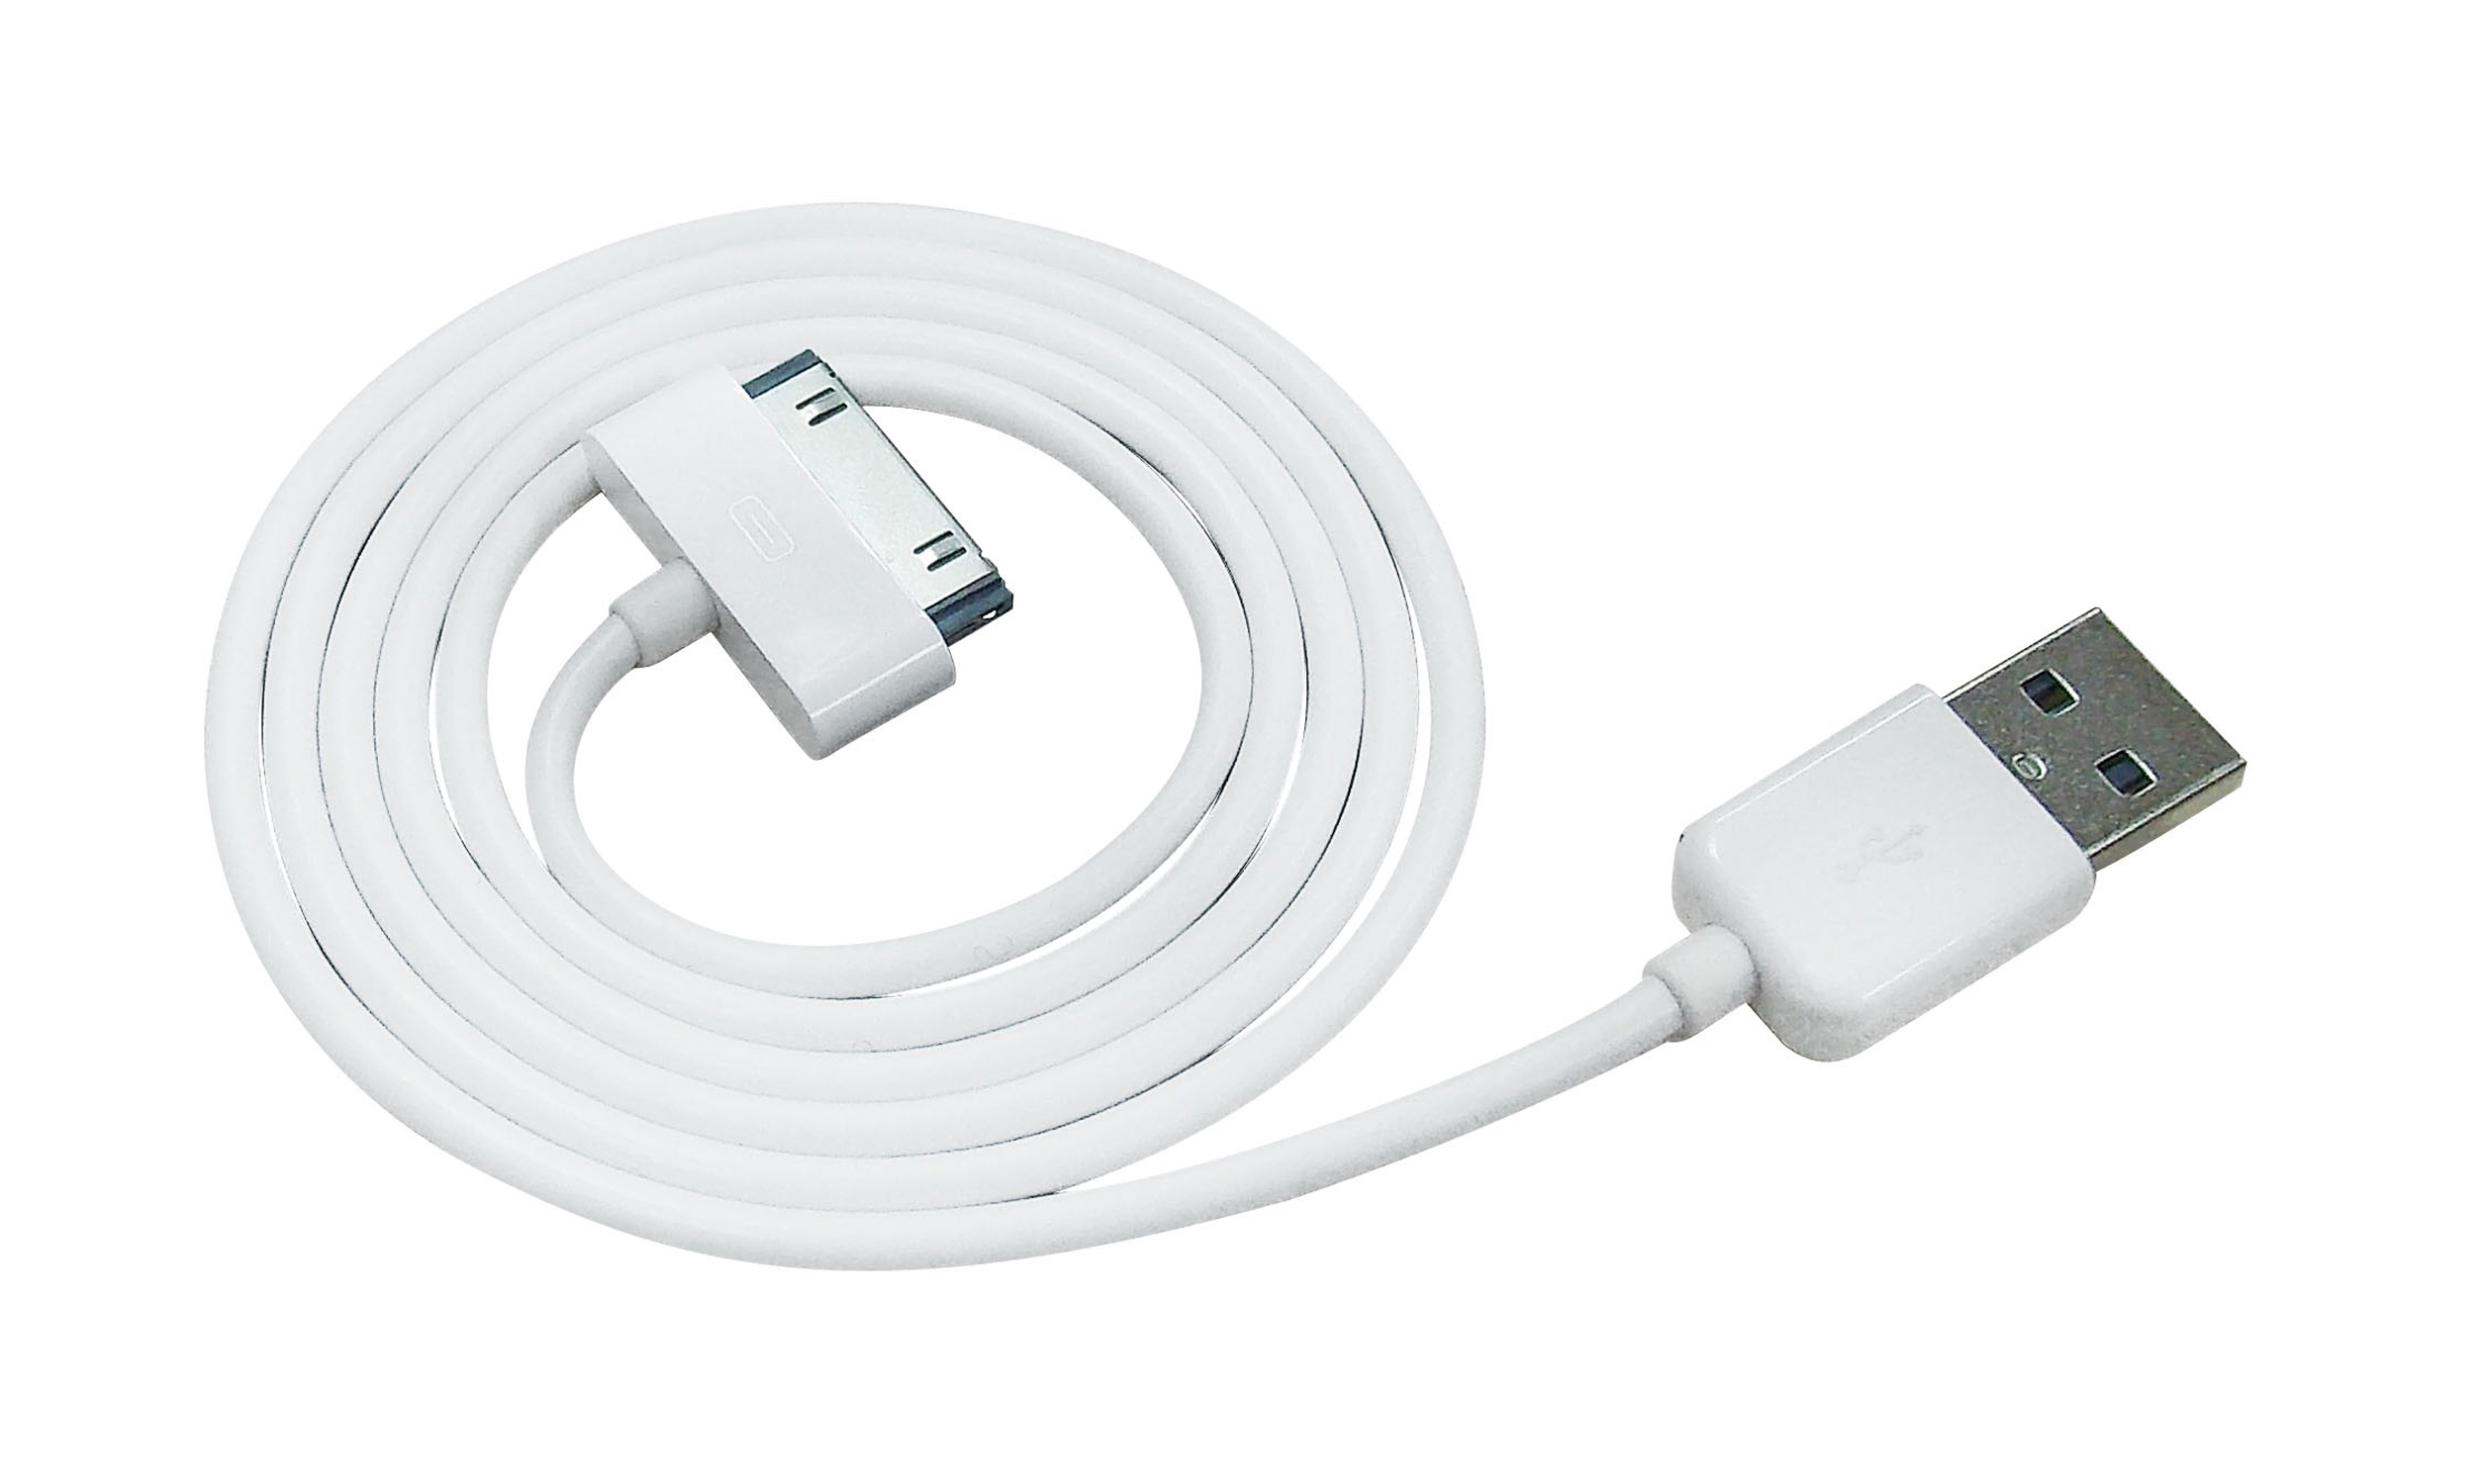 Azuri USB cable - white - for Apple iPhone - Usb Cord PNG